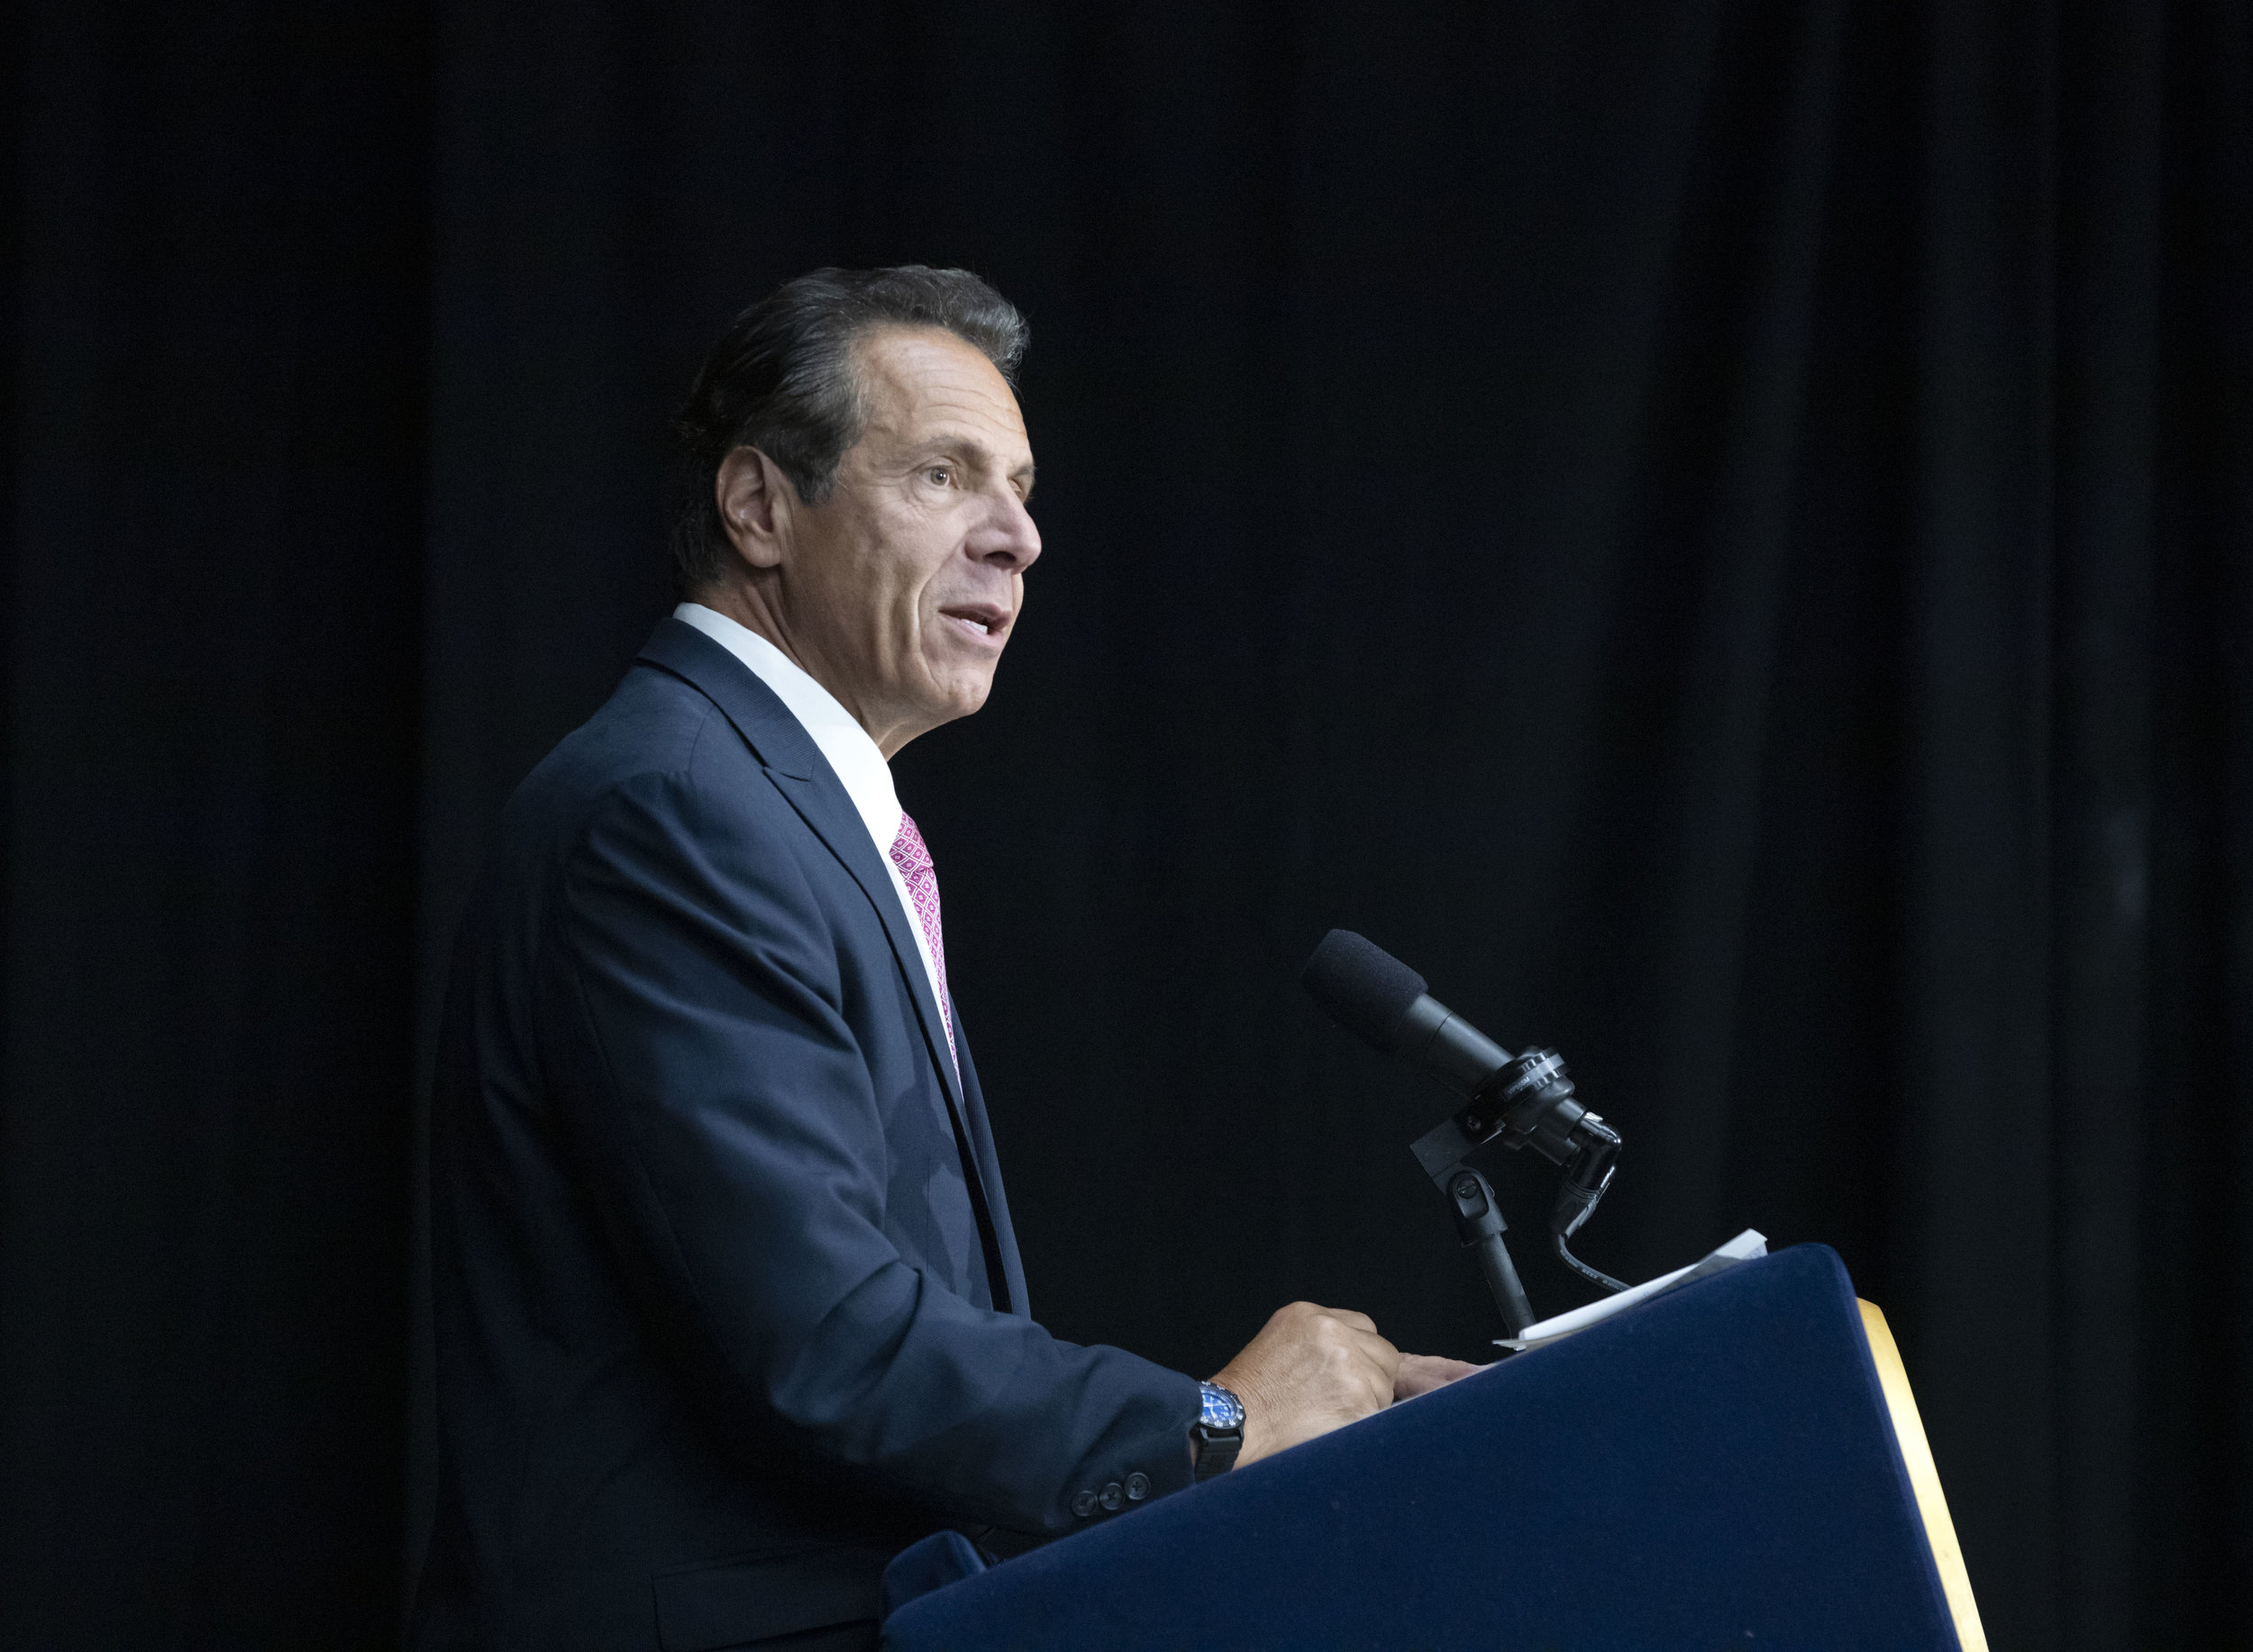 Gov. Andrew Cuomo signed a law that would close a loophole that enabled predatory lenders to target thousands of small businesses. AP Photo.